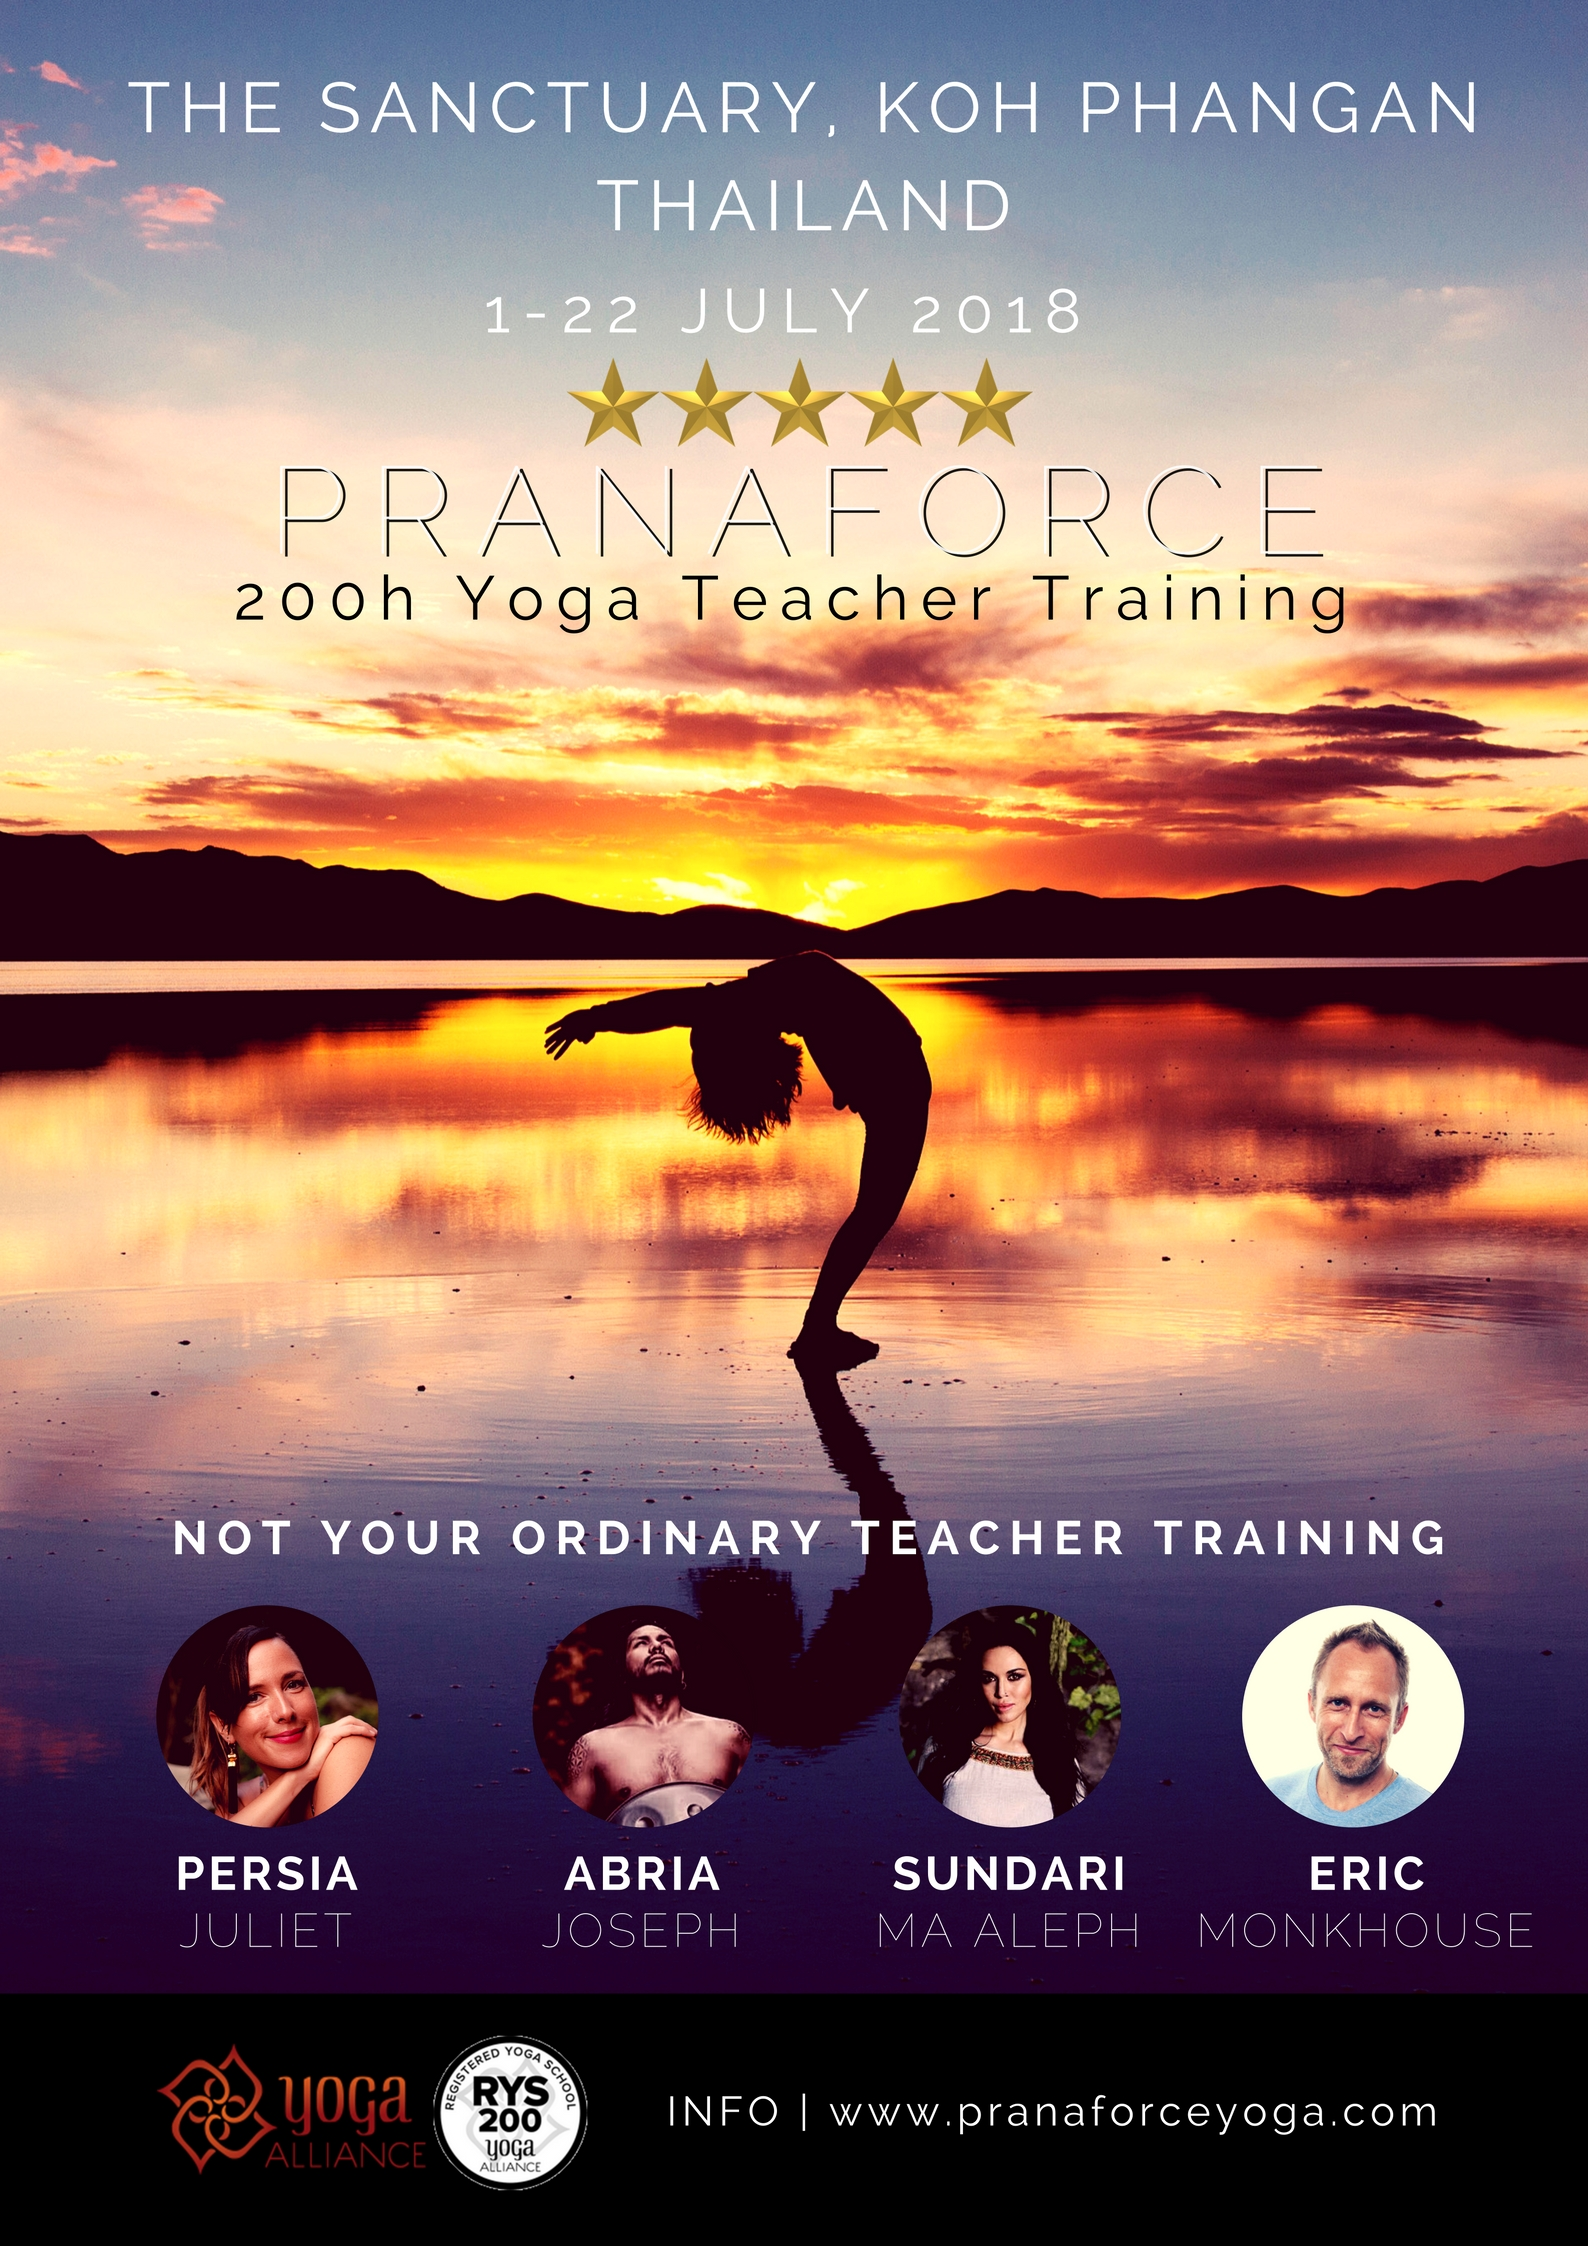 Not your ordinary teacher training - The Pranaforce 200 Hr Yoga Alliance Certified yoga teacher training is not your ordinary Yoga Teacher Training. In addition to all you would expect from world-class teachers:~~ This is the first of its kind integrated sound-healing YTT, with TED-talk training~~ It's designed to be private and intimate, with at most 5 students per teacher~~ You graduate with your own website and professional yoga photography